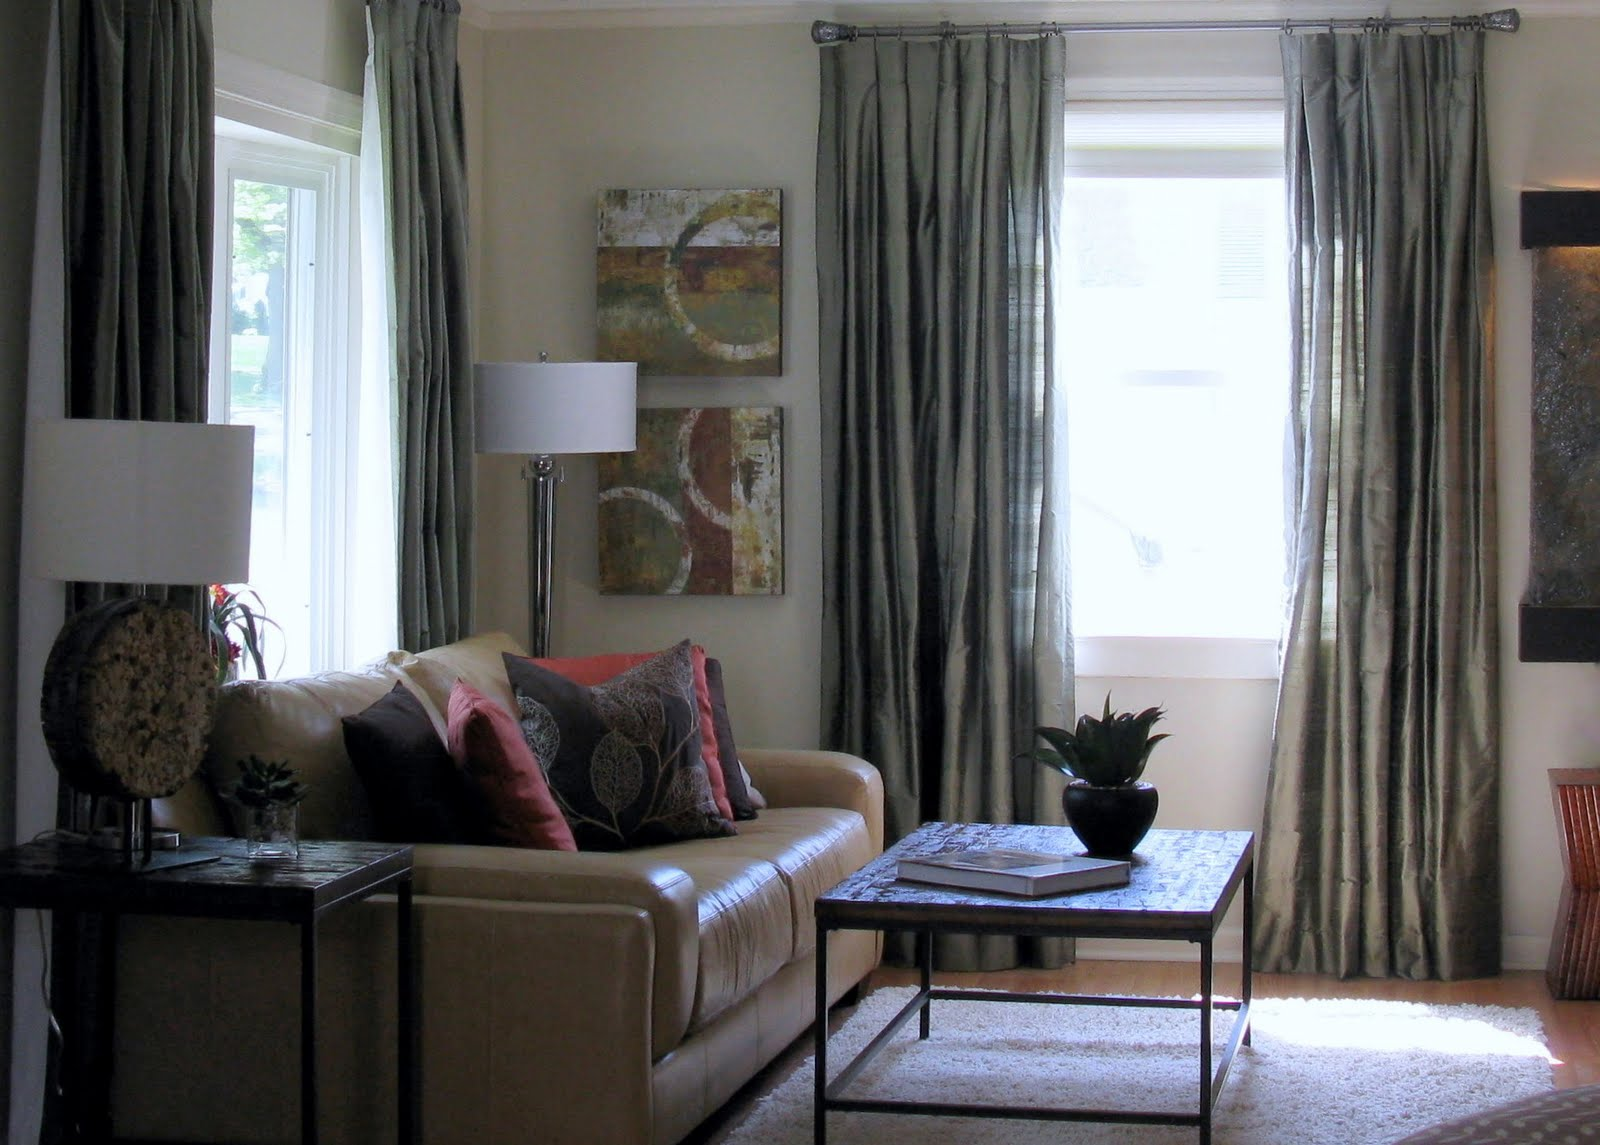 LoveYourRoom: Small Awkward Living Room Becomes Beautiful